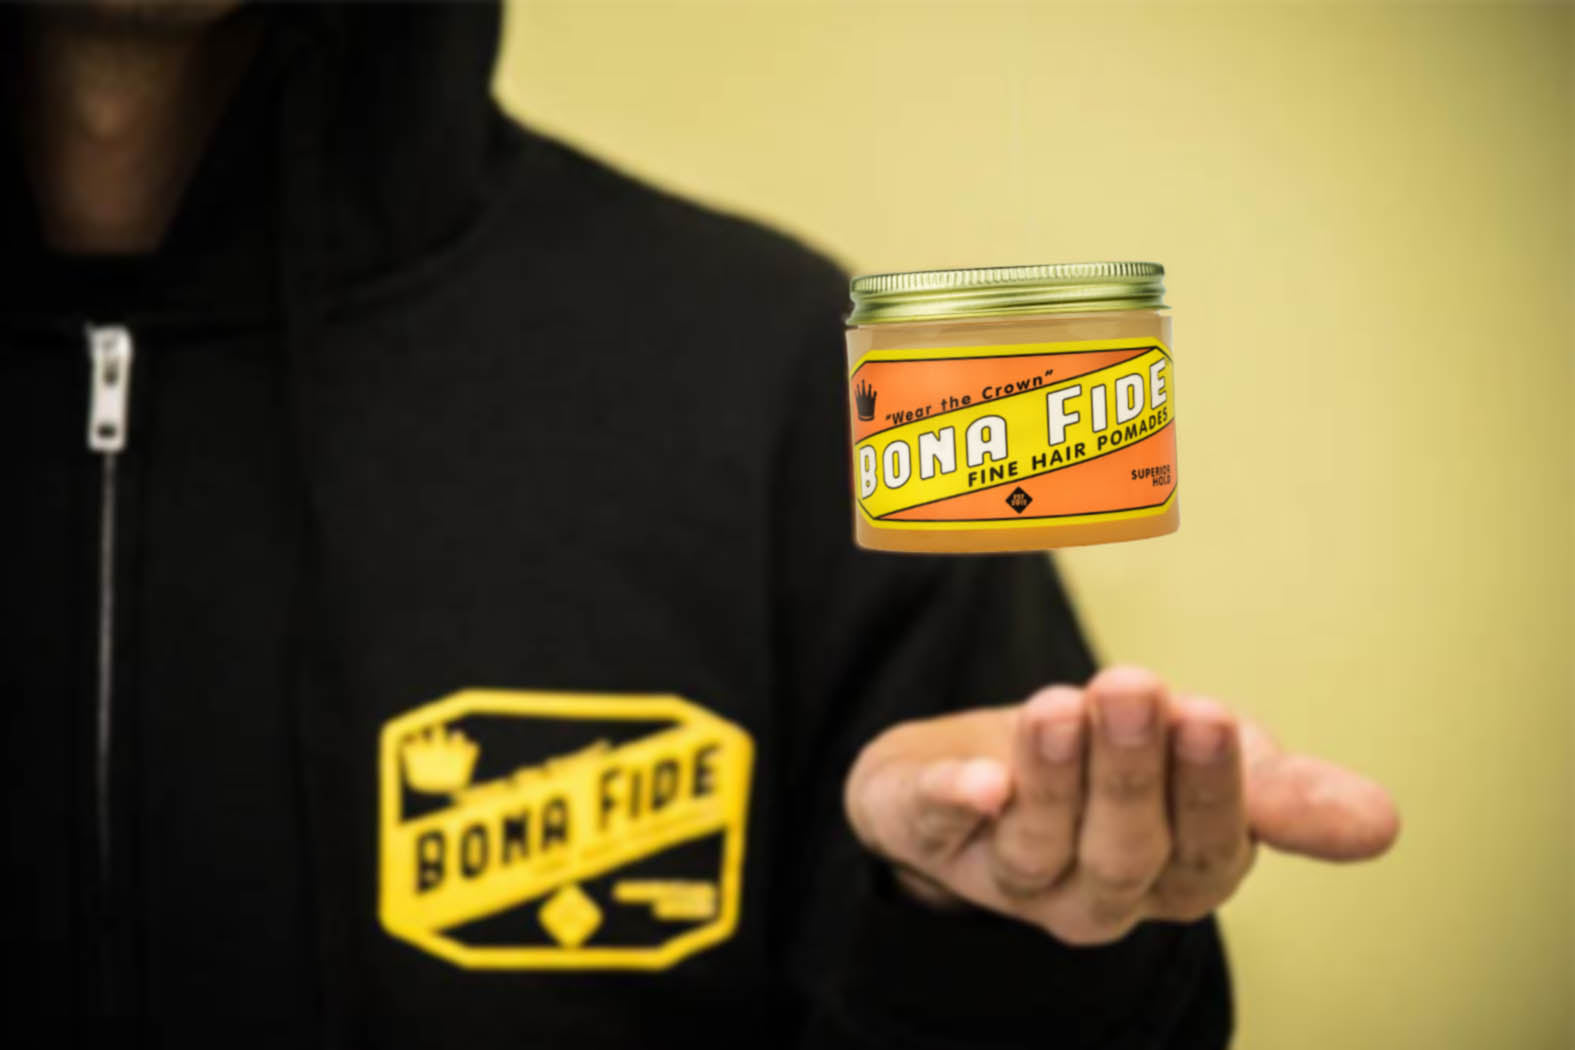 Bona Fide Pomade (superior hold)